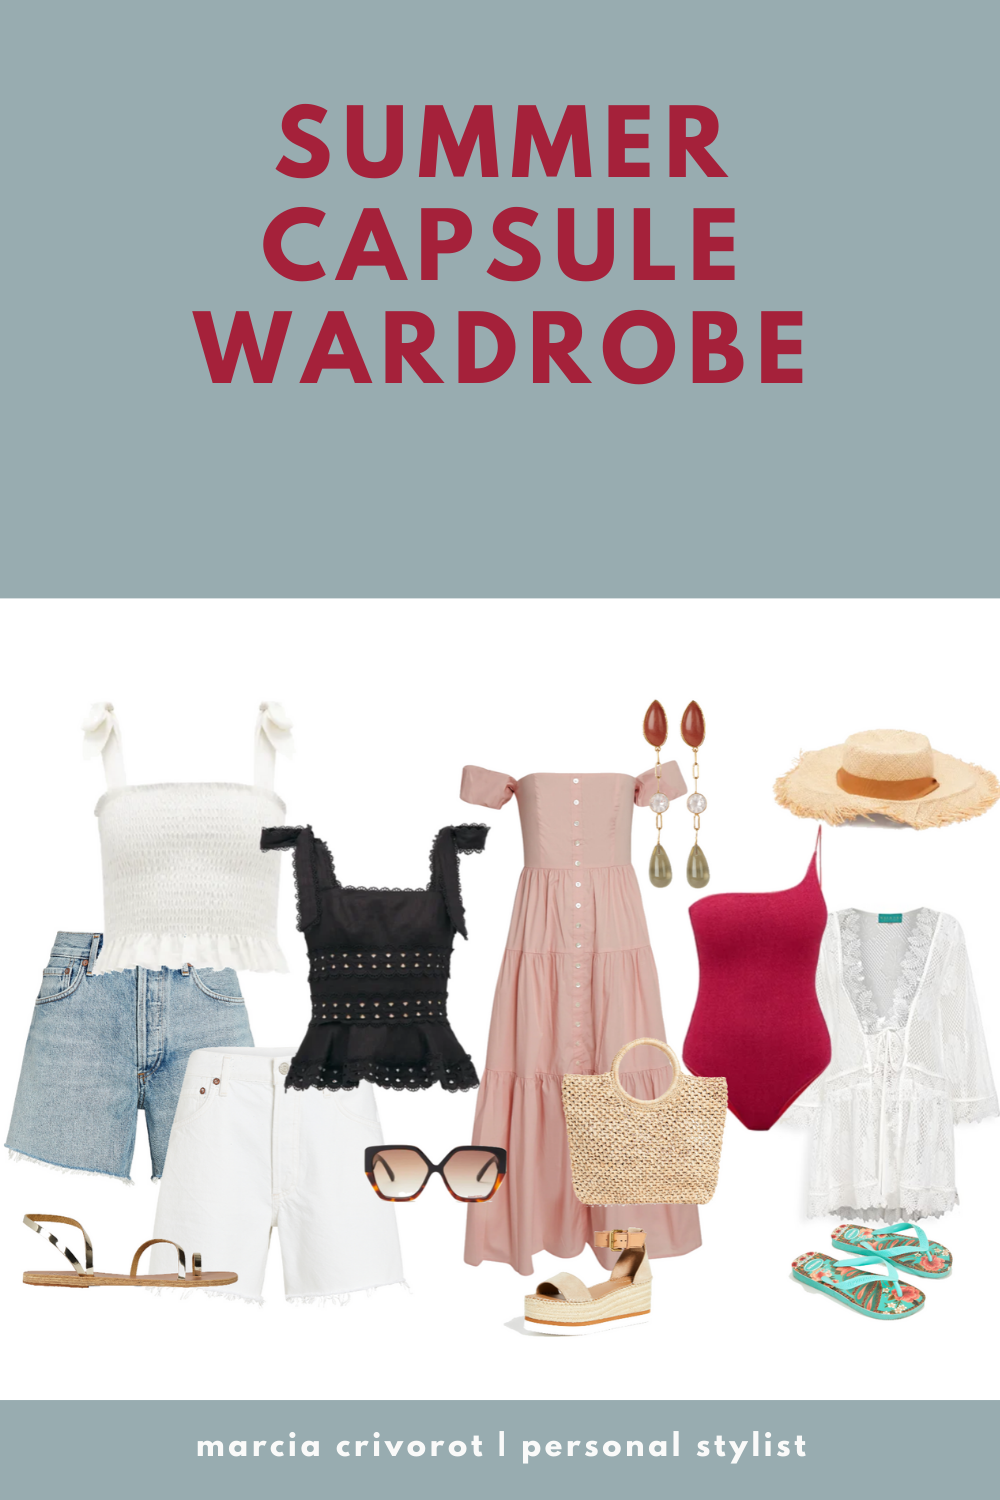 This Summer outfits 2020 board is a perfect Summer capsule wardrobe. Casual shorts, nice